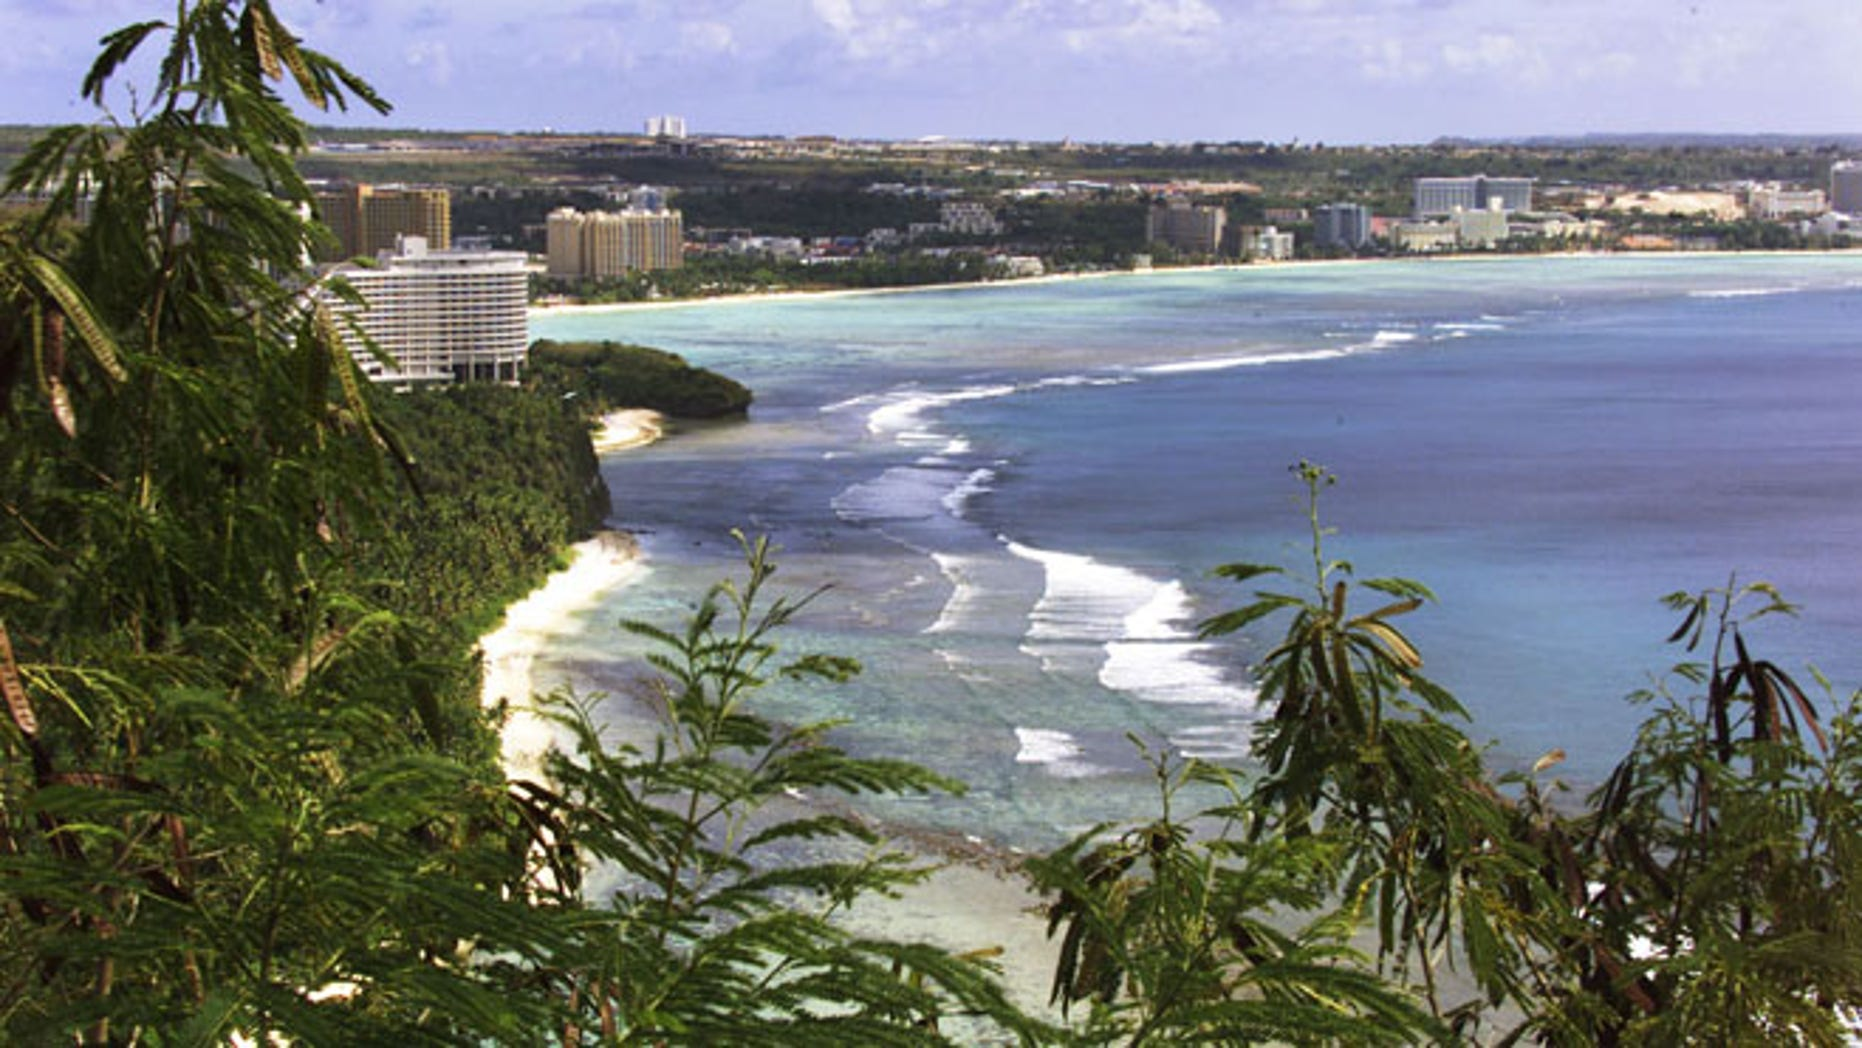 Beachside file photo of Tumon Bay, Guam.